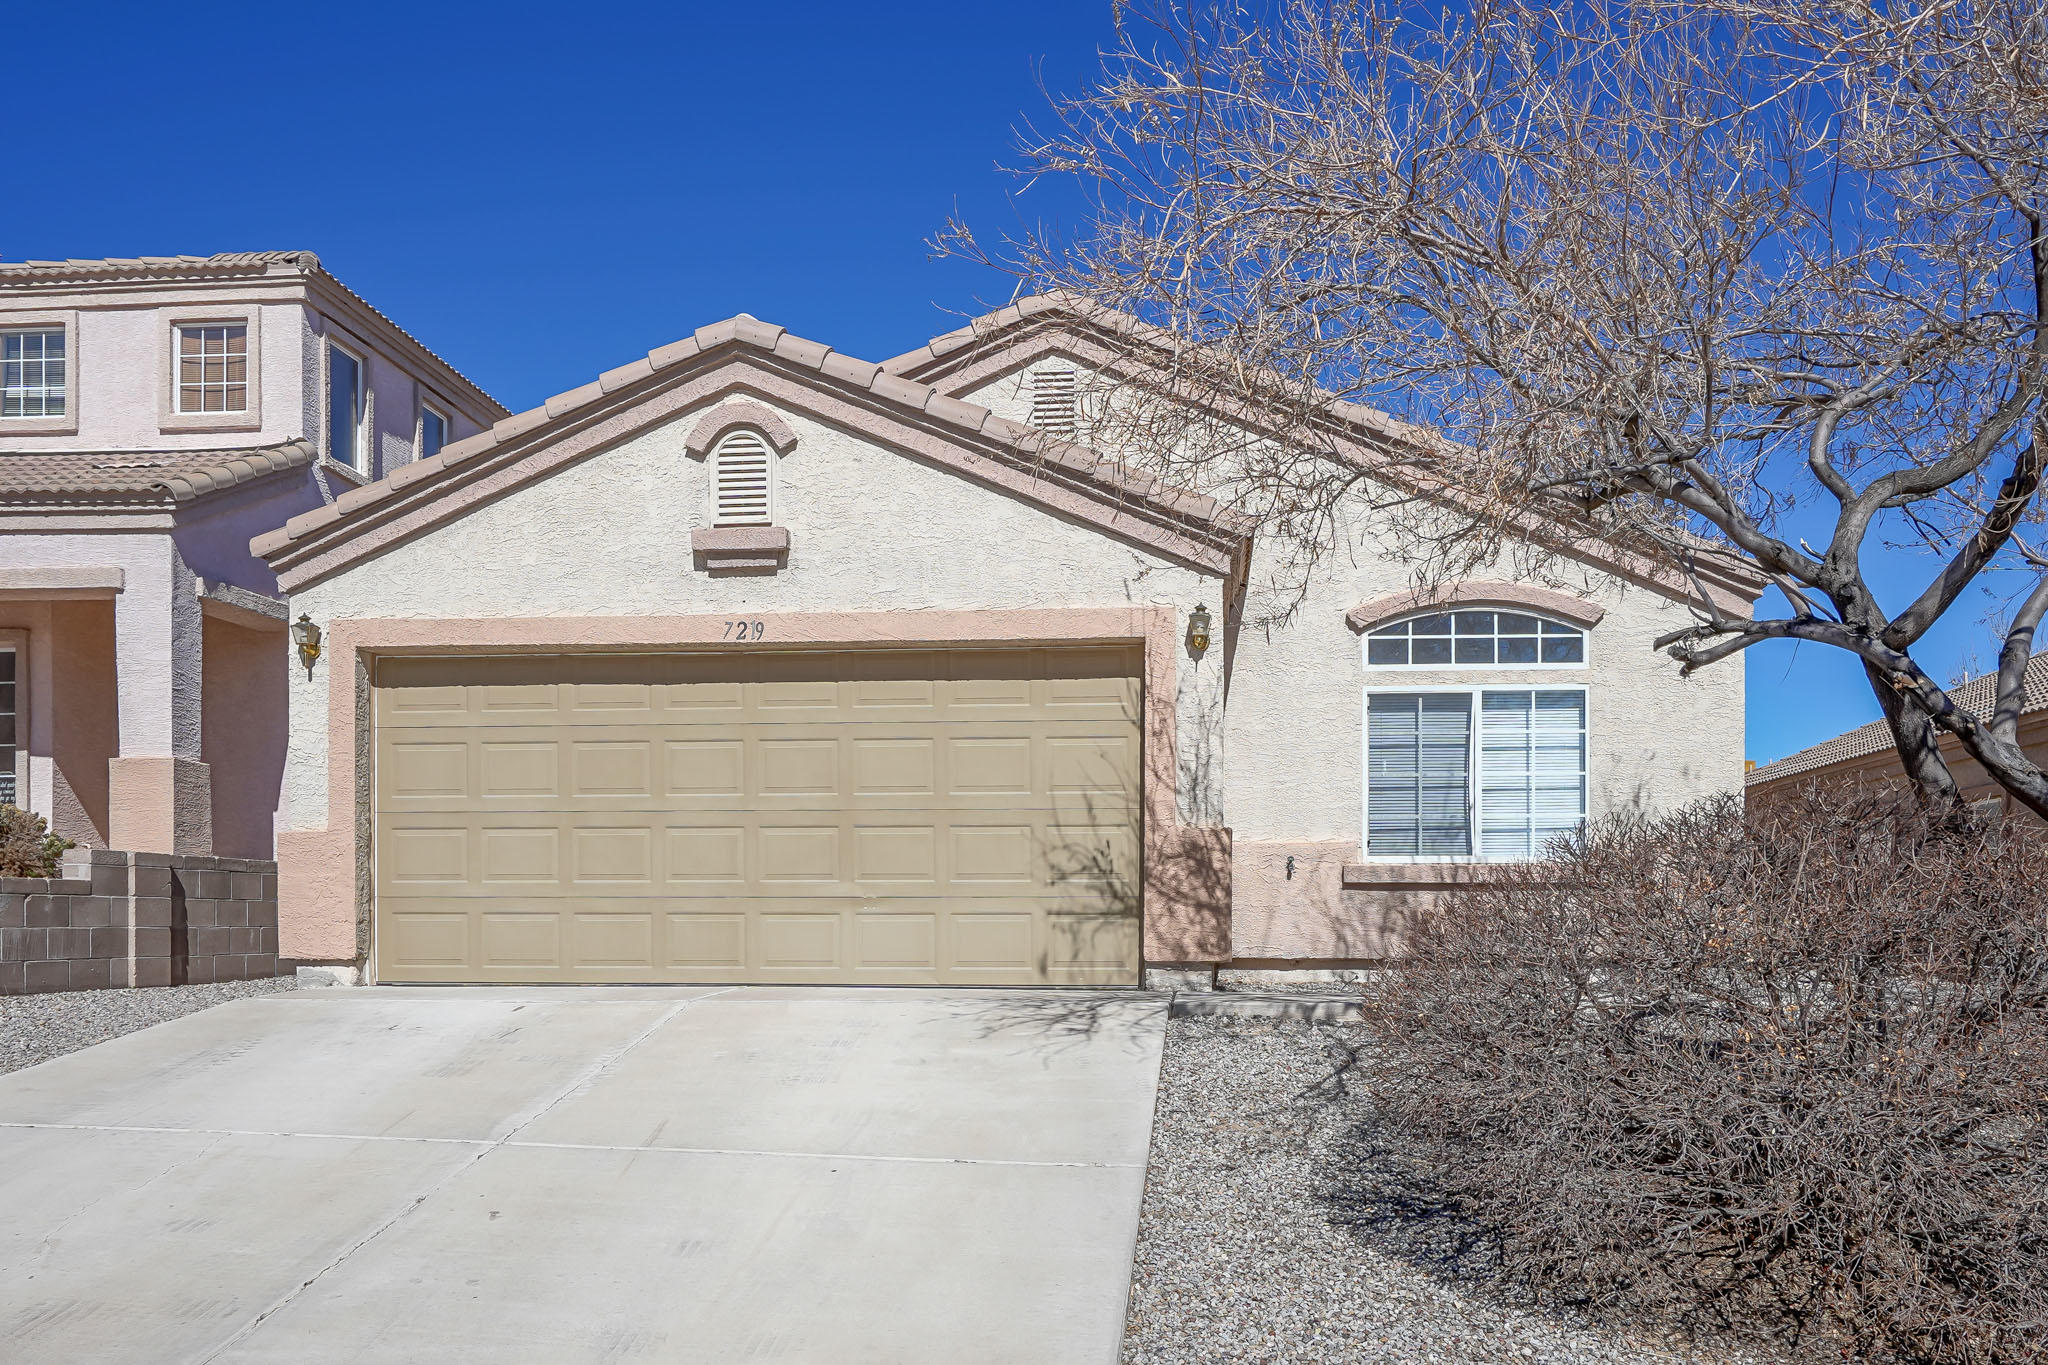 7219 Teypana Road, Albuquerque NM 87114